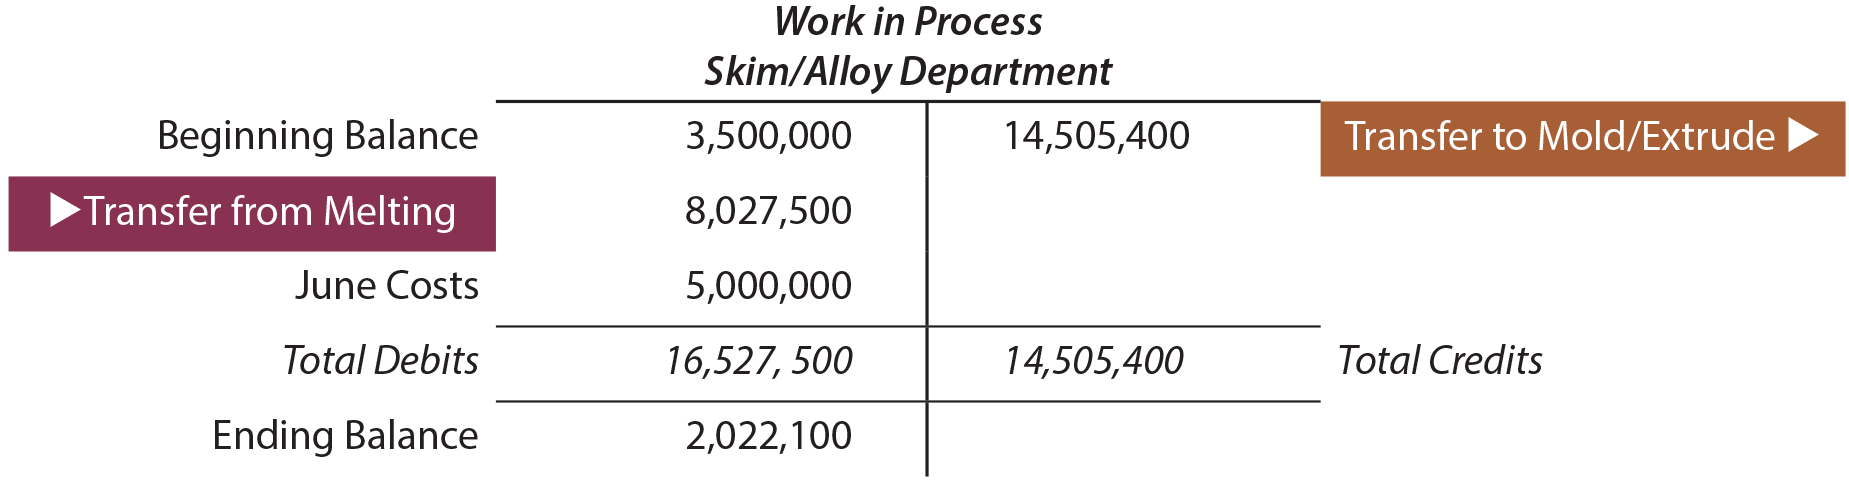 Work in Process Skim Department T Account